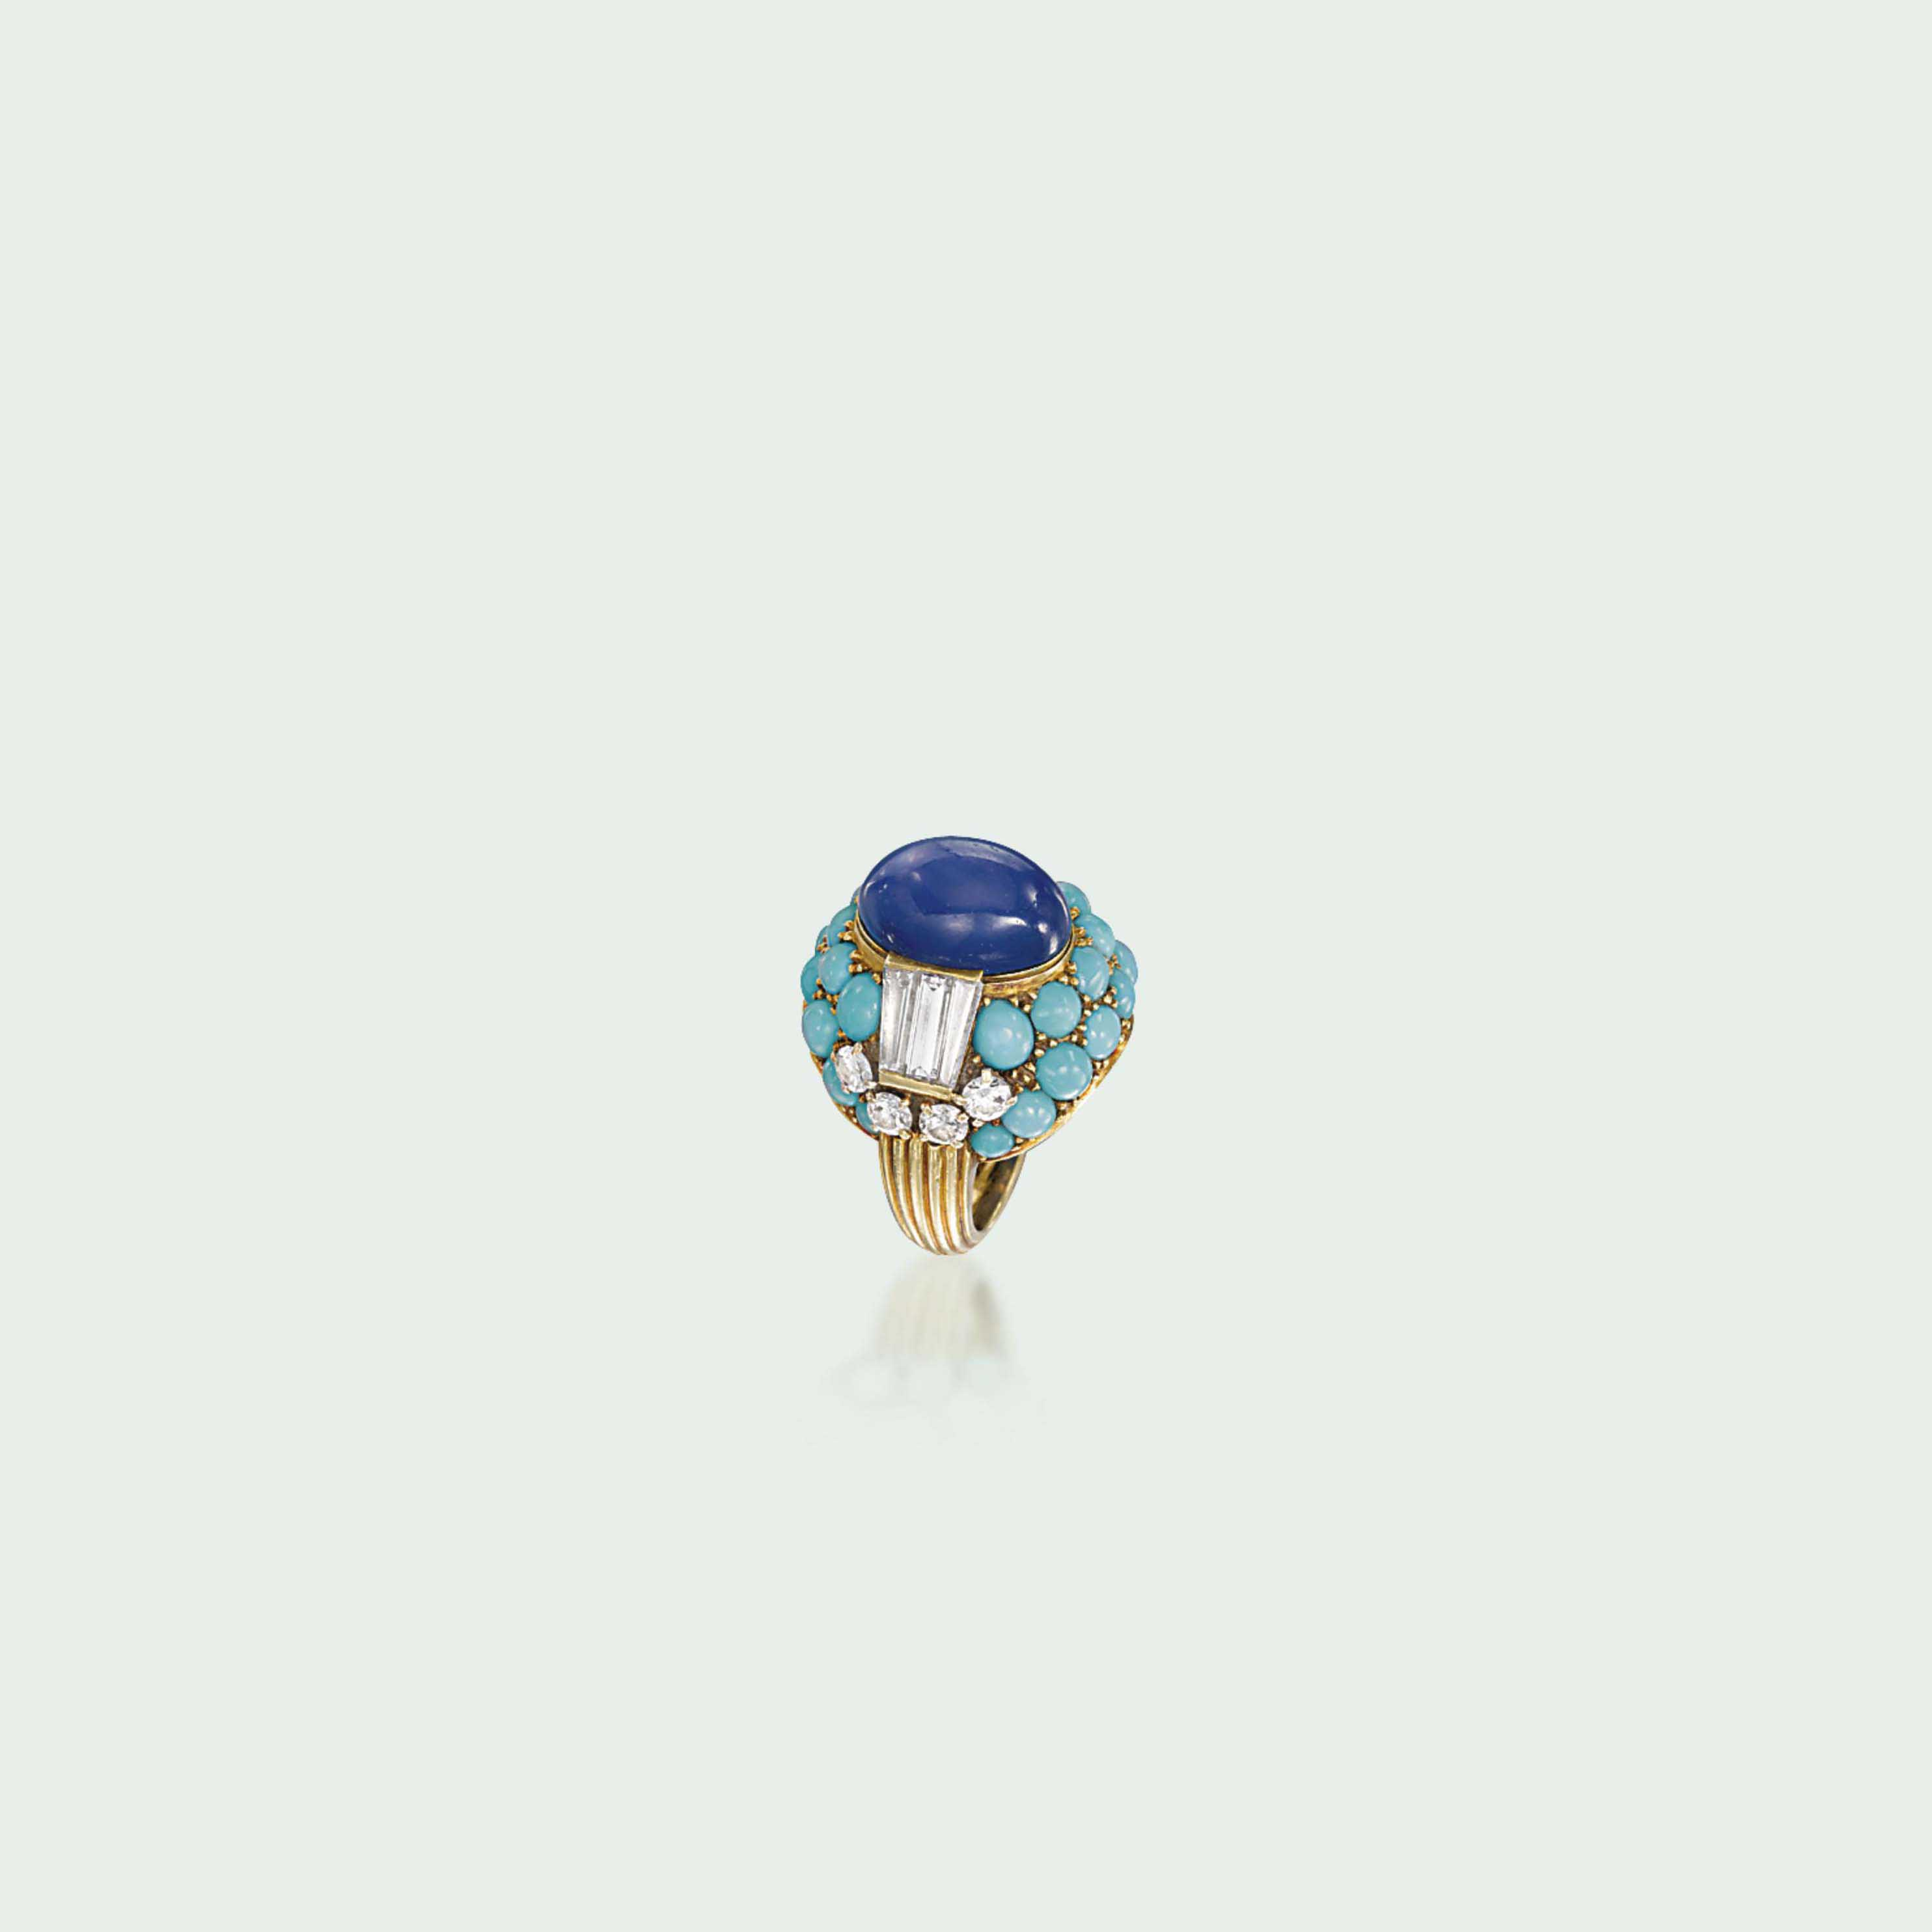 A STAR SAPPHIRE, TURQUOISE AND DIAMOND COCKTAIL RING, BY CARTIER